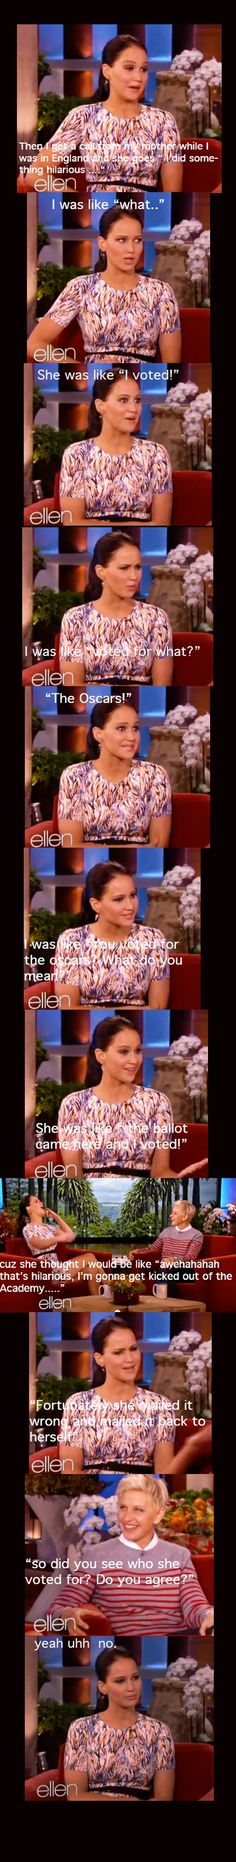 Jennifer Lawrence Interview with Ellen she is so funny! Haha